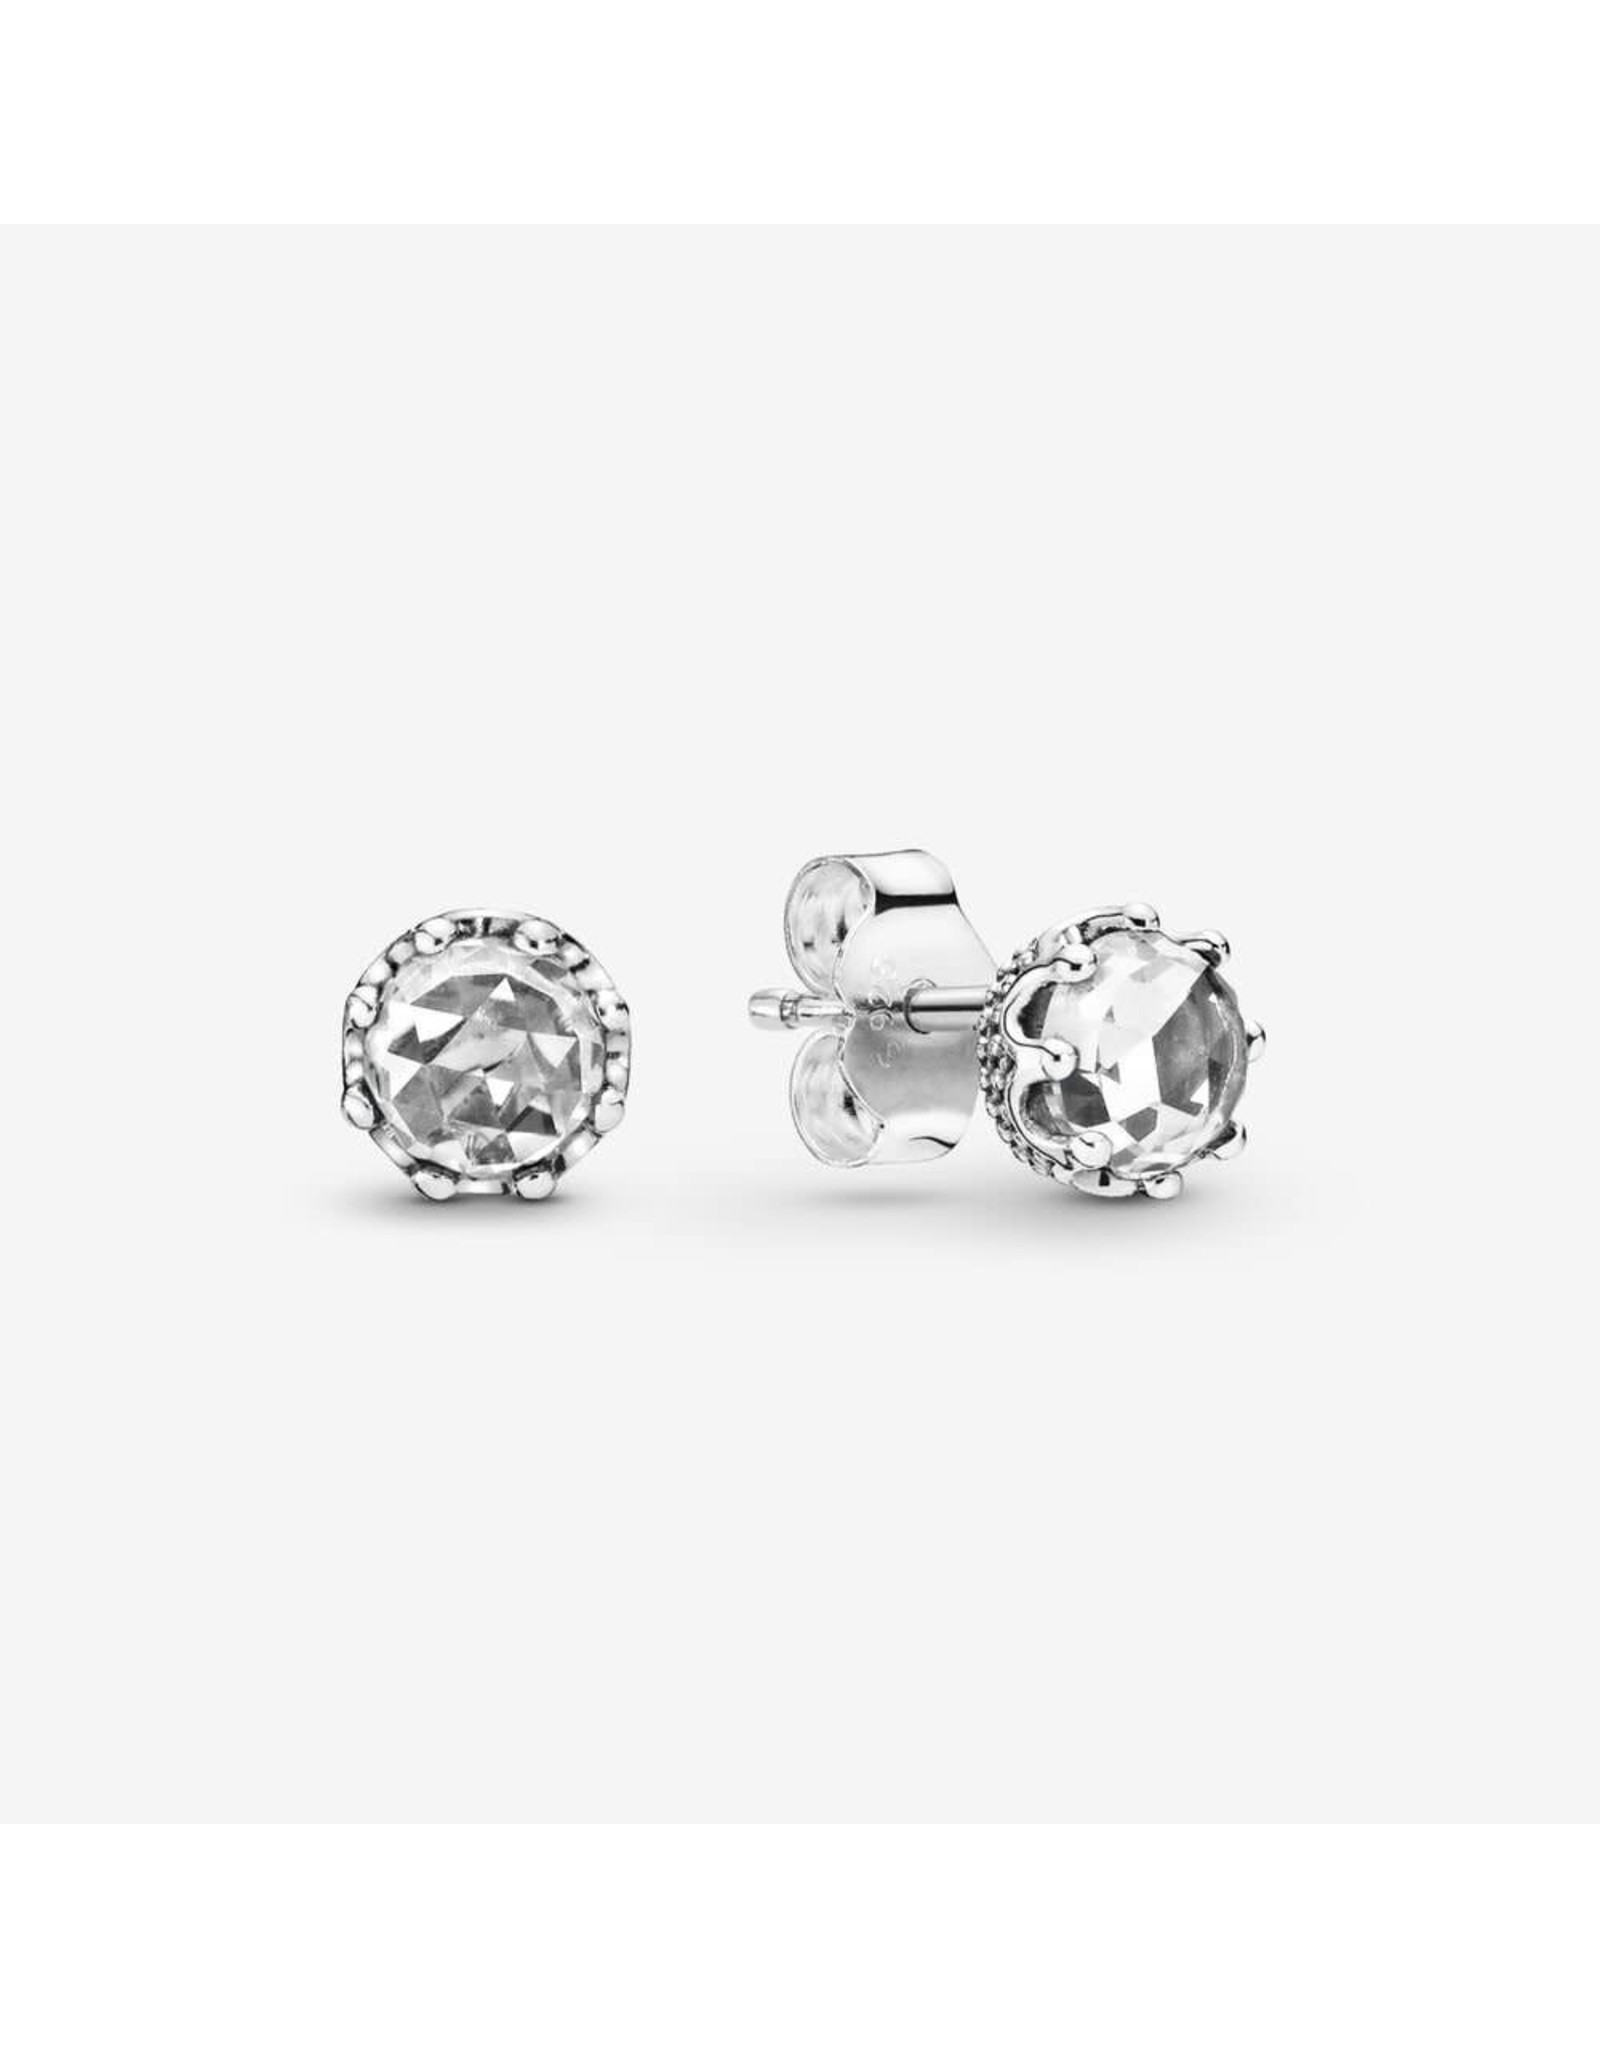 Pandora Pandora Earrings, 298311CZ,  Crown Sterling Silver Stud With Clear CZ